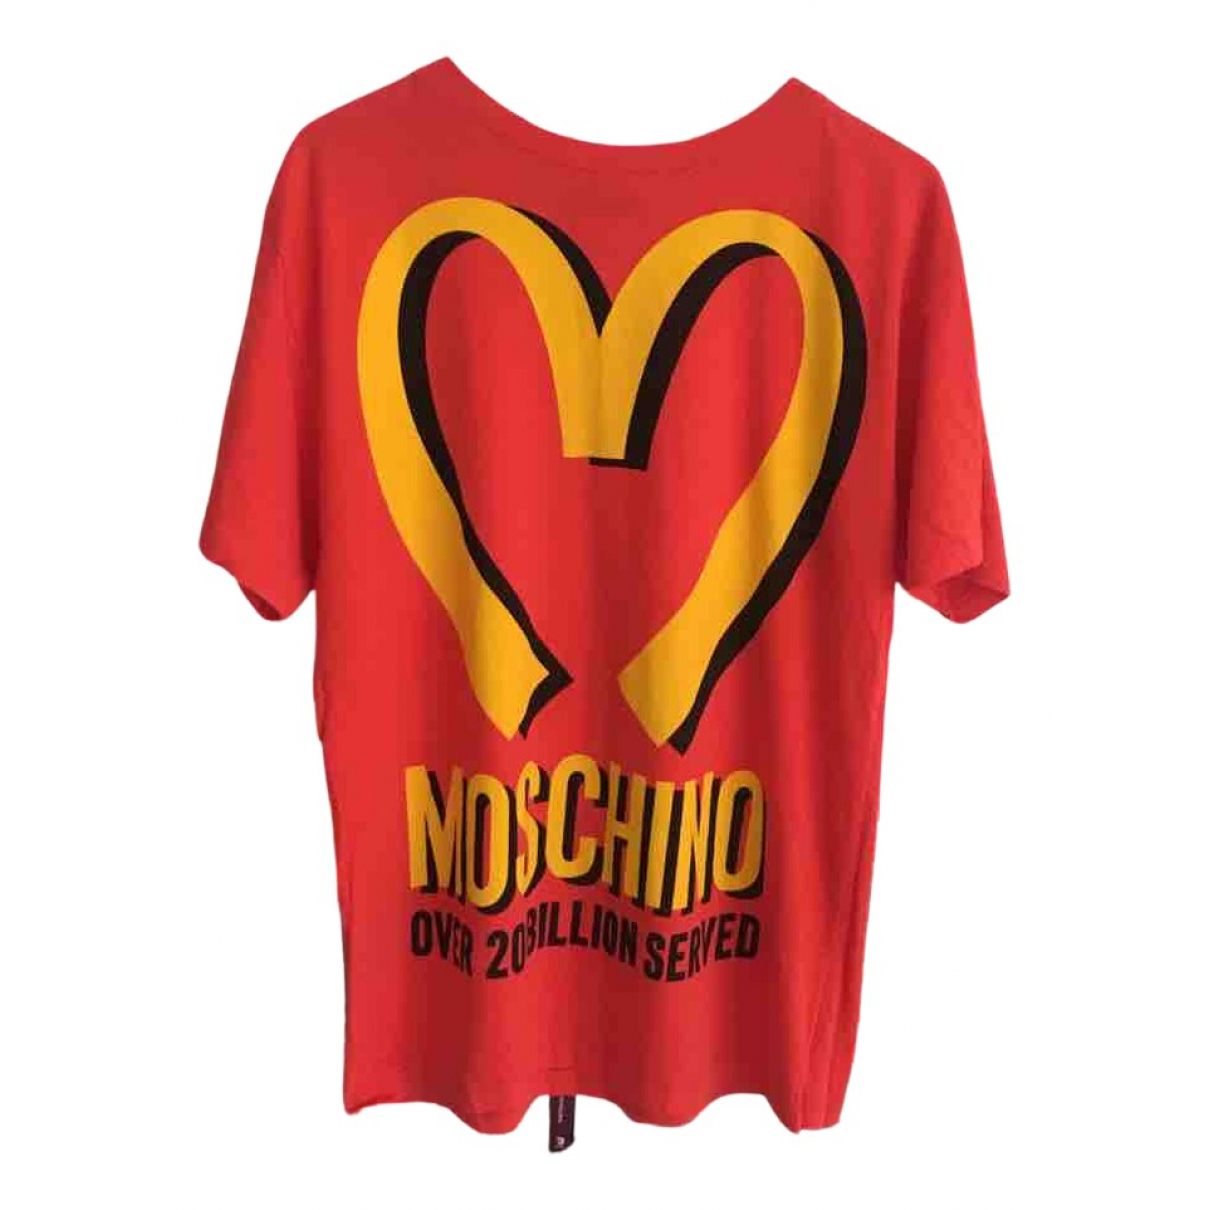 Moschino - Tee shirts   pour homme en coton - rouge